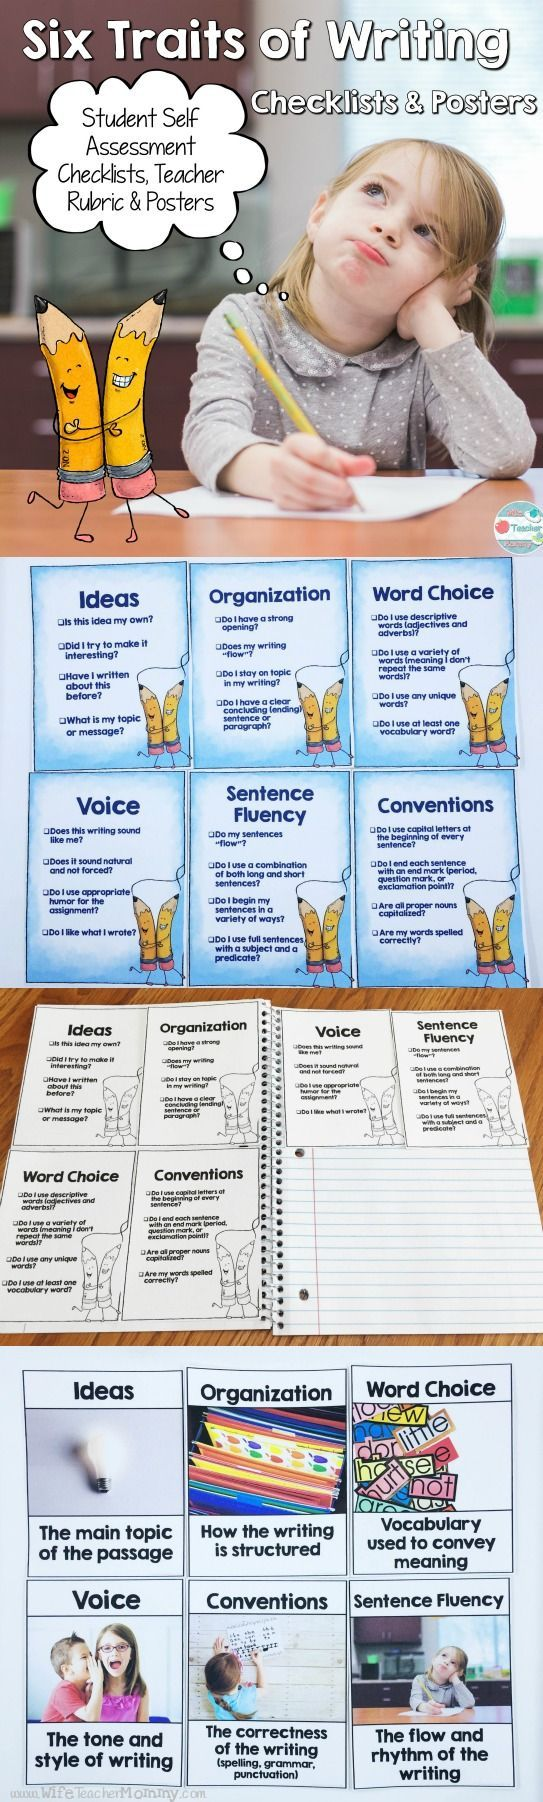 Six Traits of Writing Posters and Checklists. These are perfect for student's notebooks! Students can self assess their own writing using the six traits. The six traits posters with real pictures are perfect for a word wall or to hang in your classroom! https://www.teacherspayteachers.com/Product/6-Six-Traits-of-Writing-Posters-and-Student-Checklists-1560349